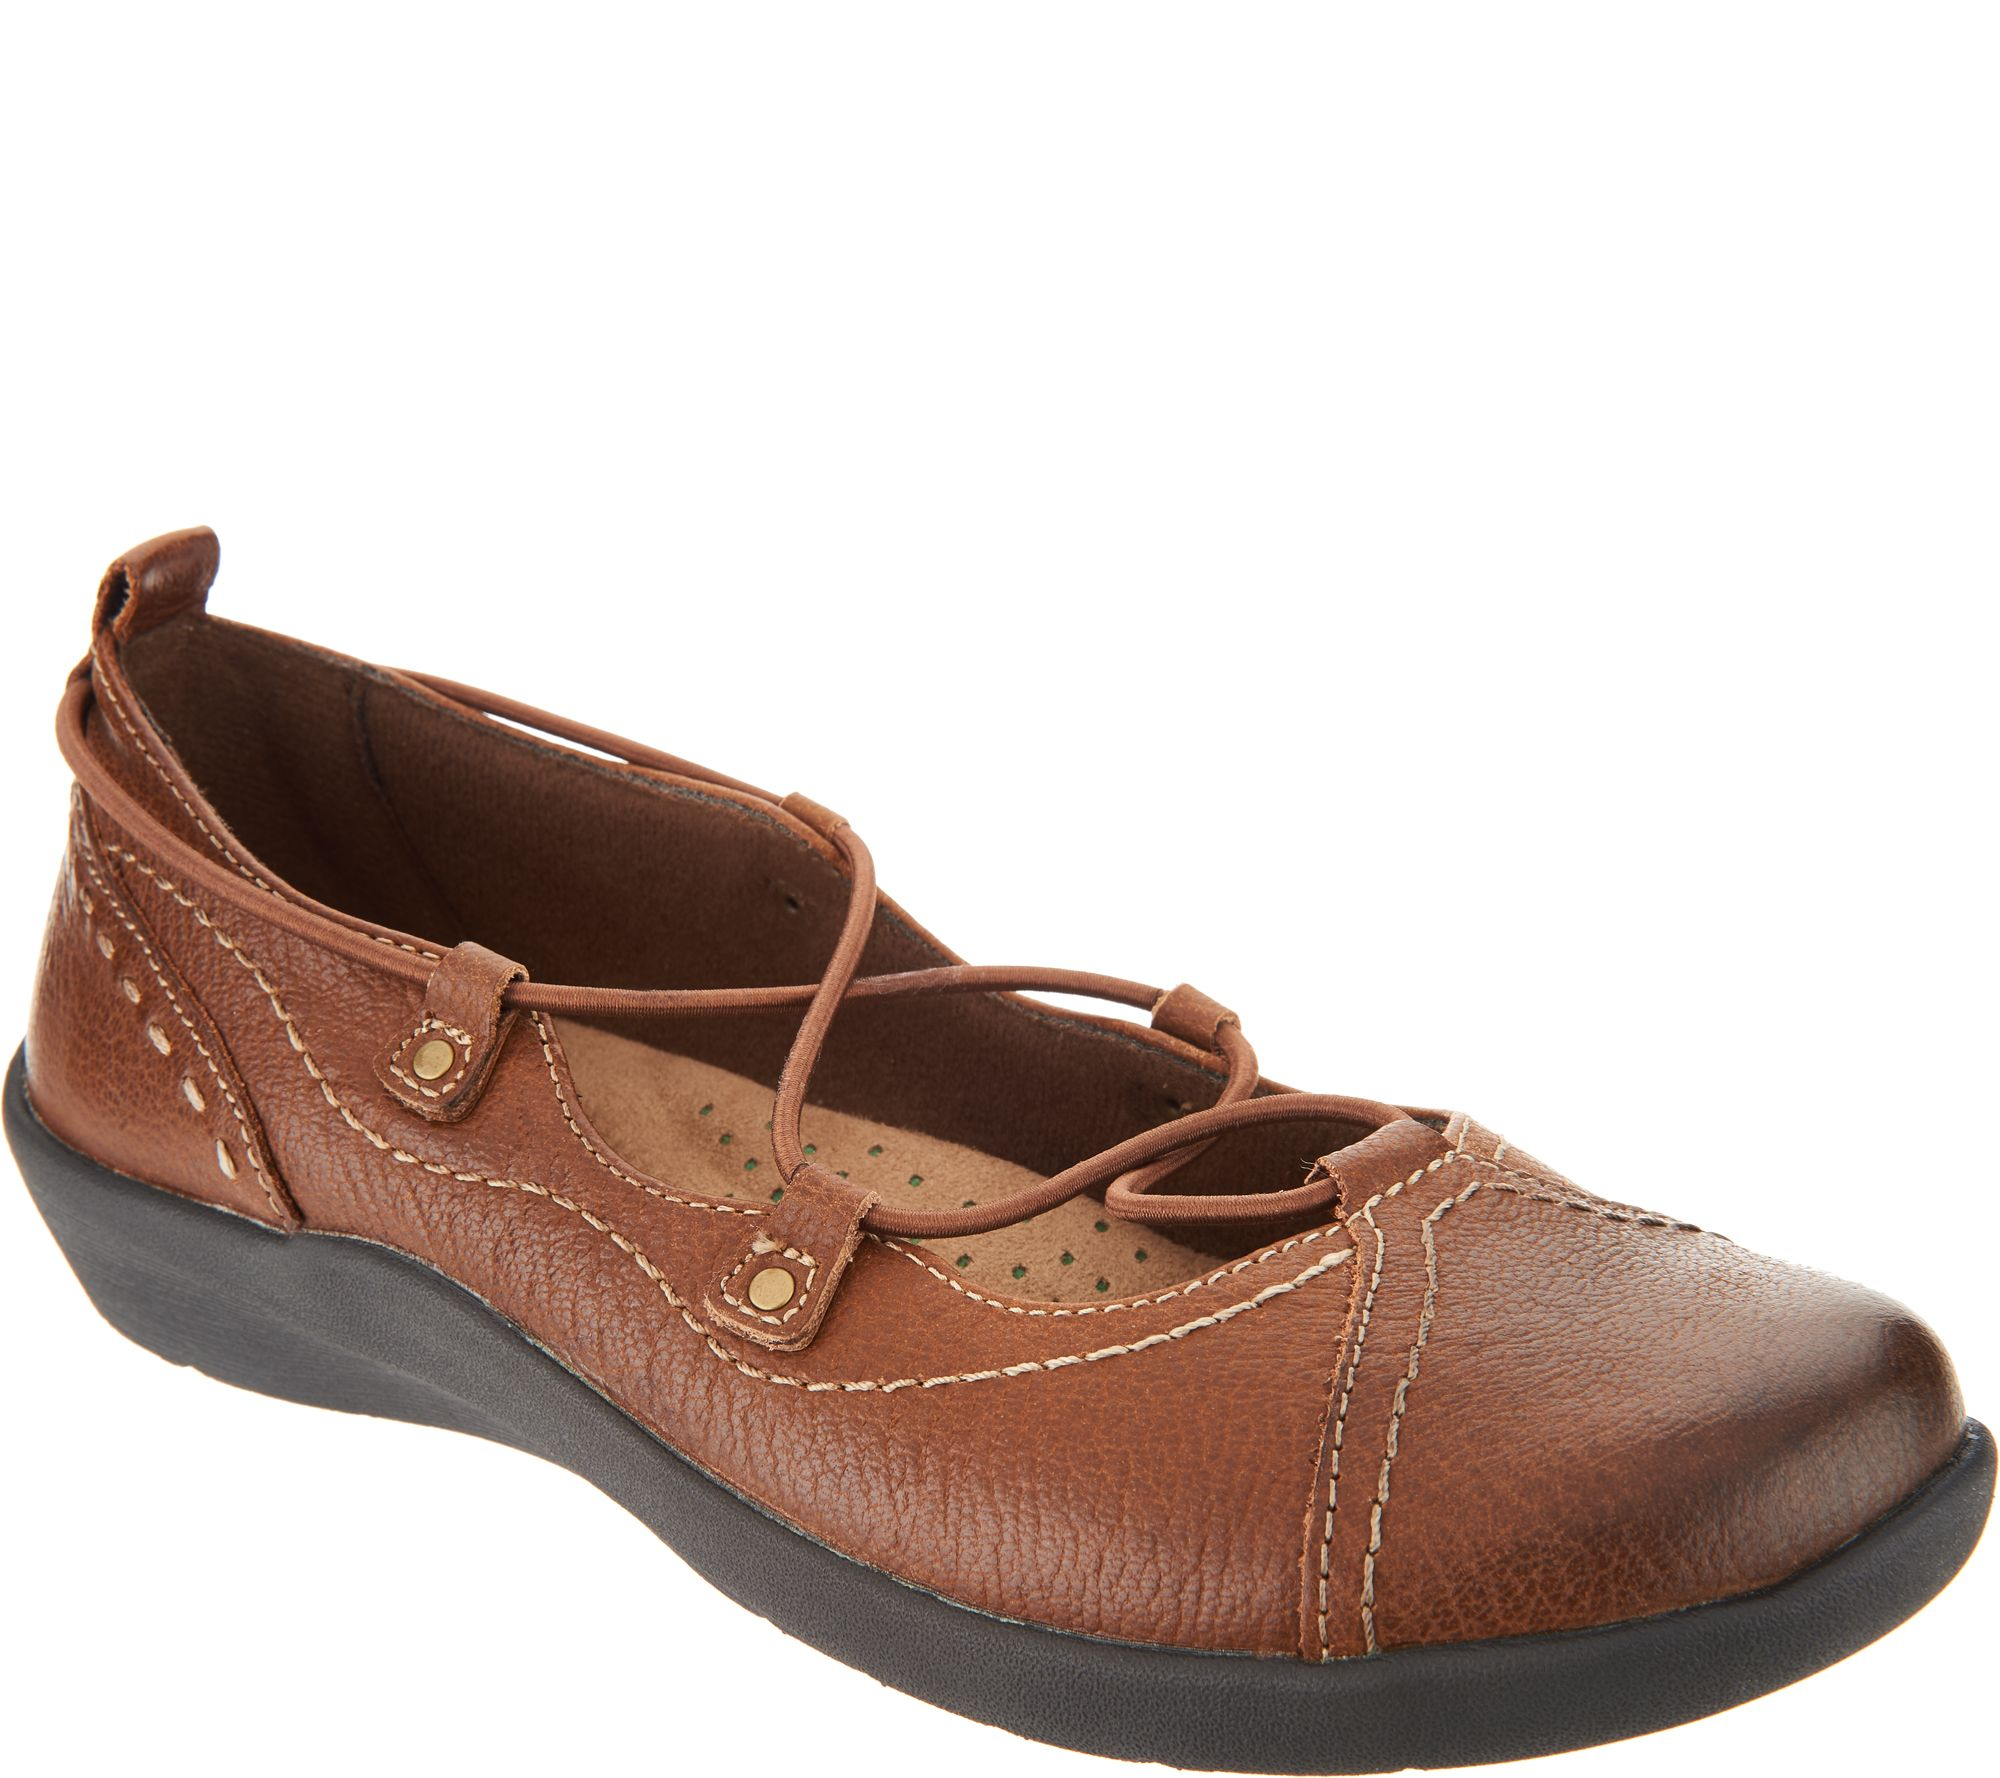 discount choice Earth Origins Leather Bungee Lace Slip-ons - London sale with mastercard 9iL6sygMVn